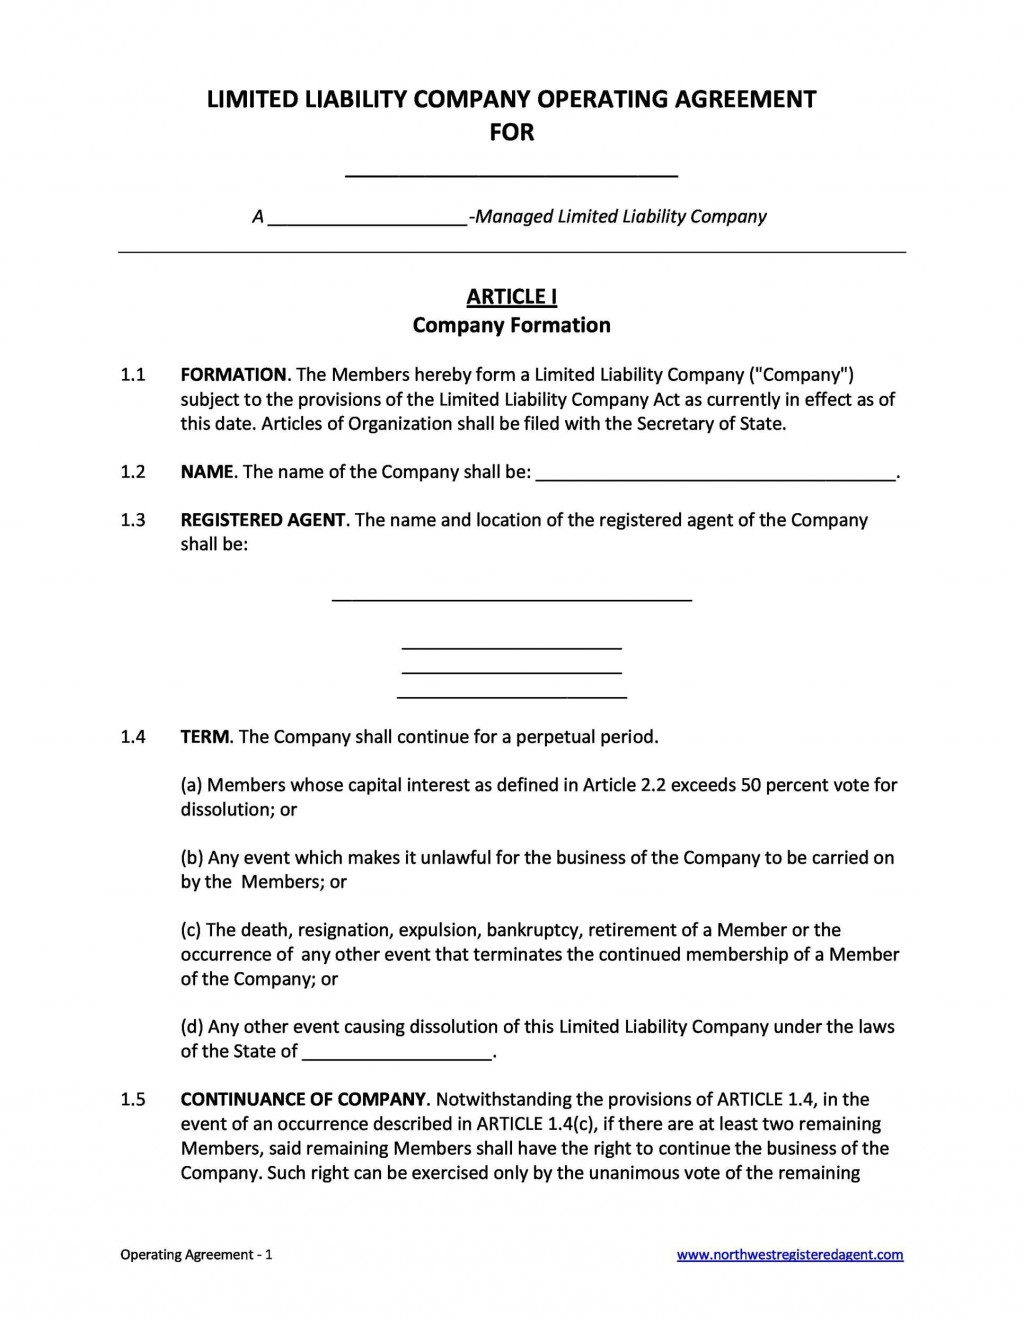 006 Remarkable Operation Agreement Llc Template Concept  Operating Florida Indiana Single Member CaliforniaLarge